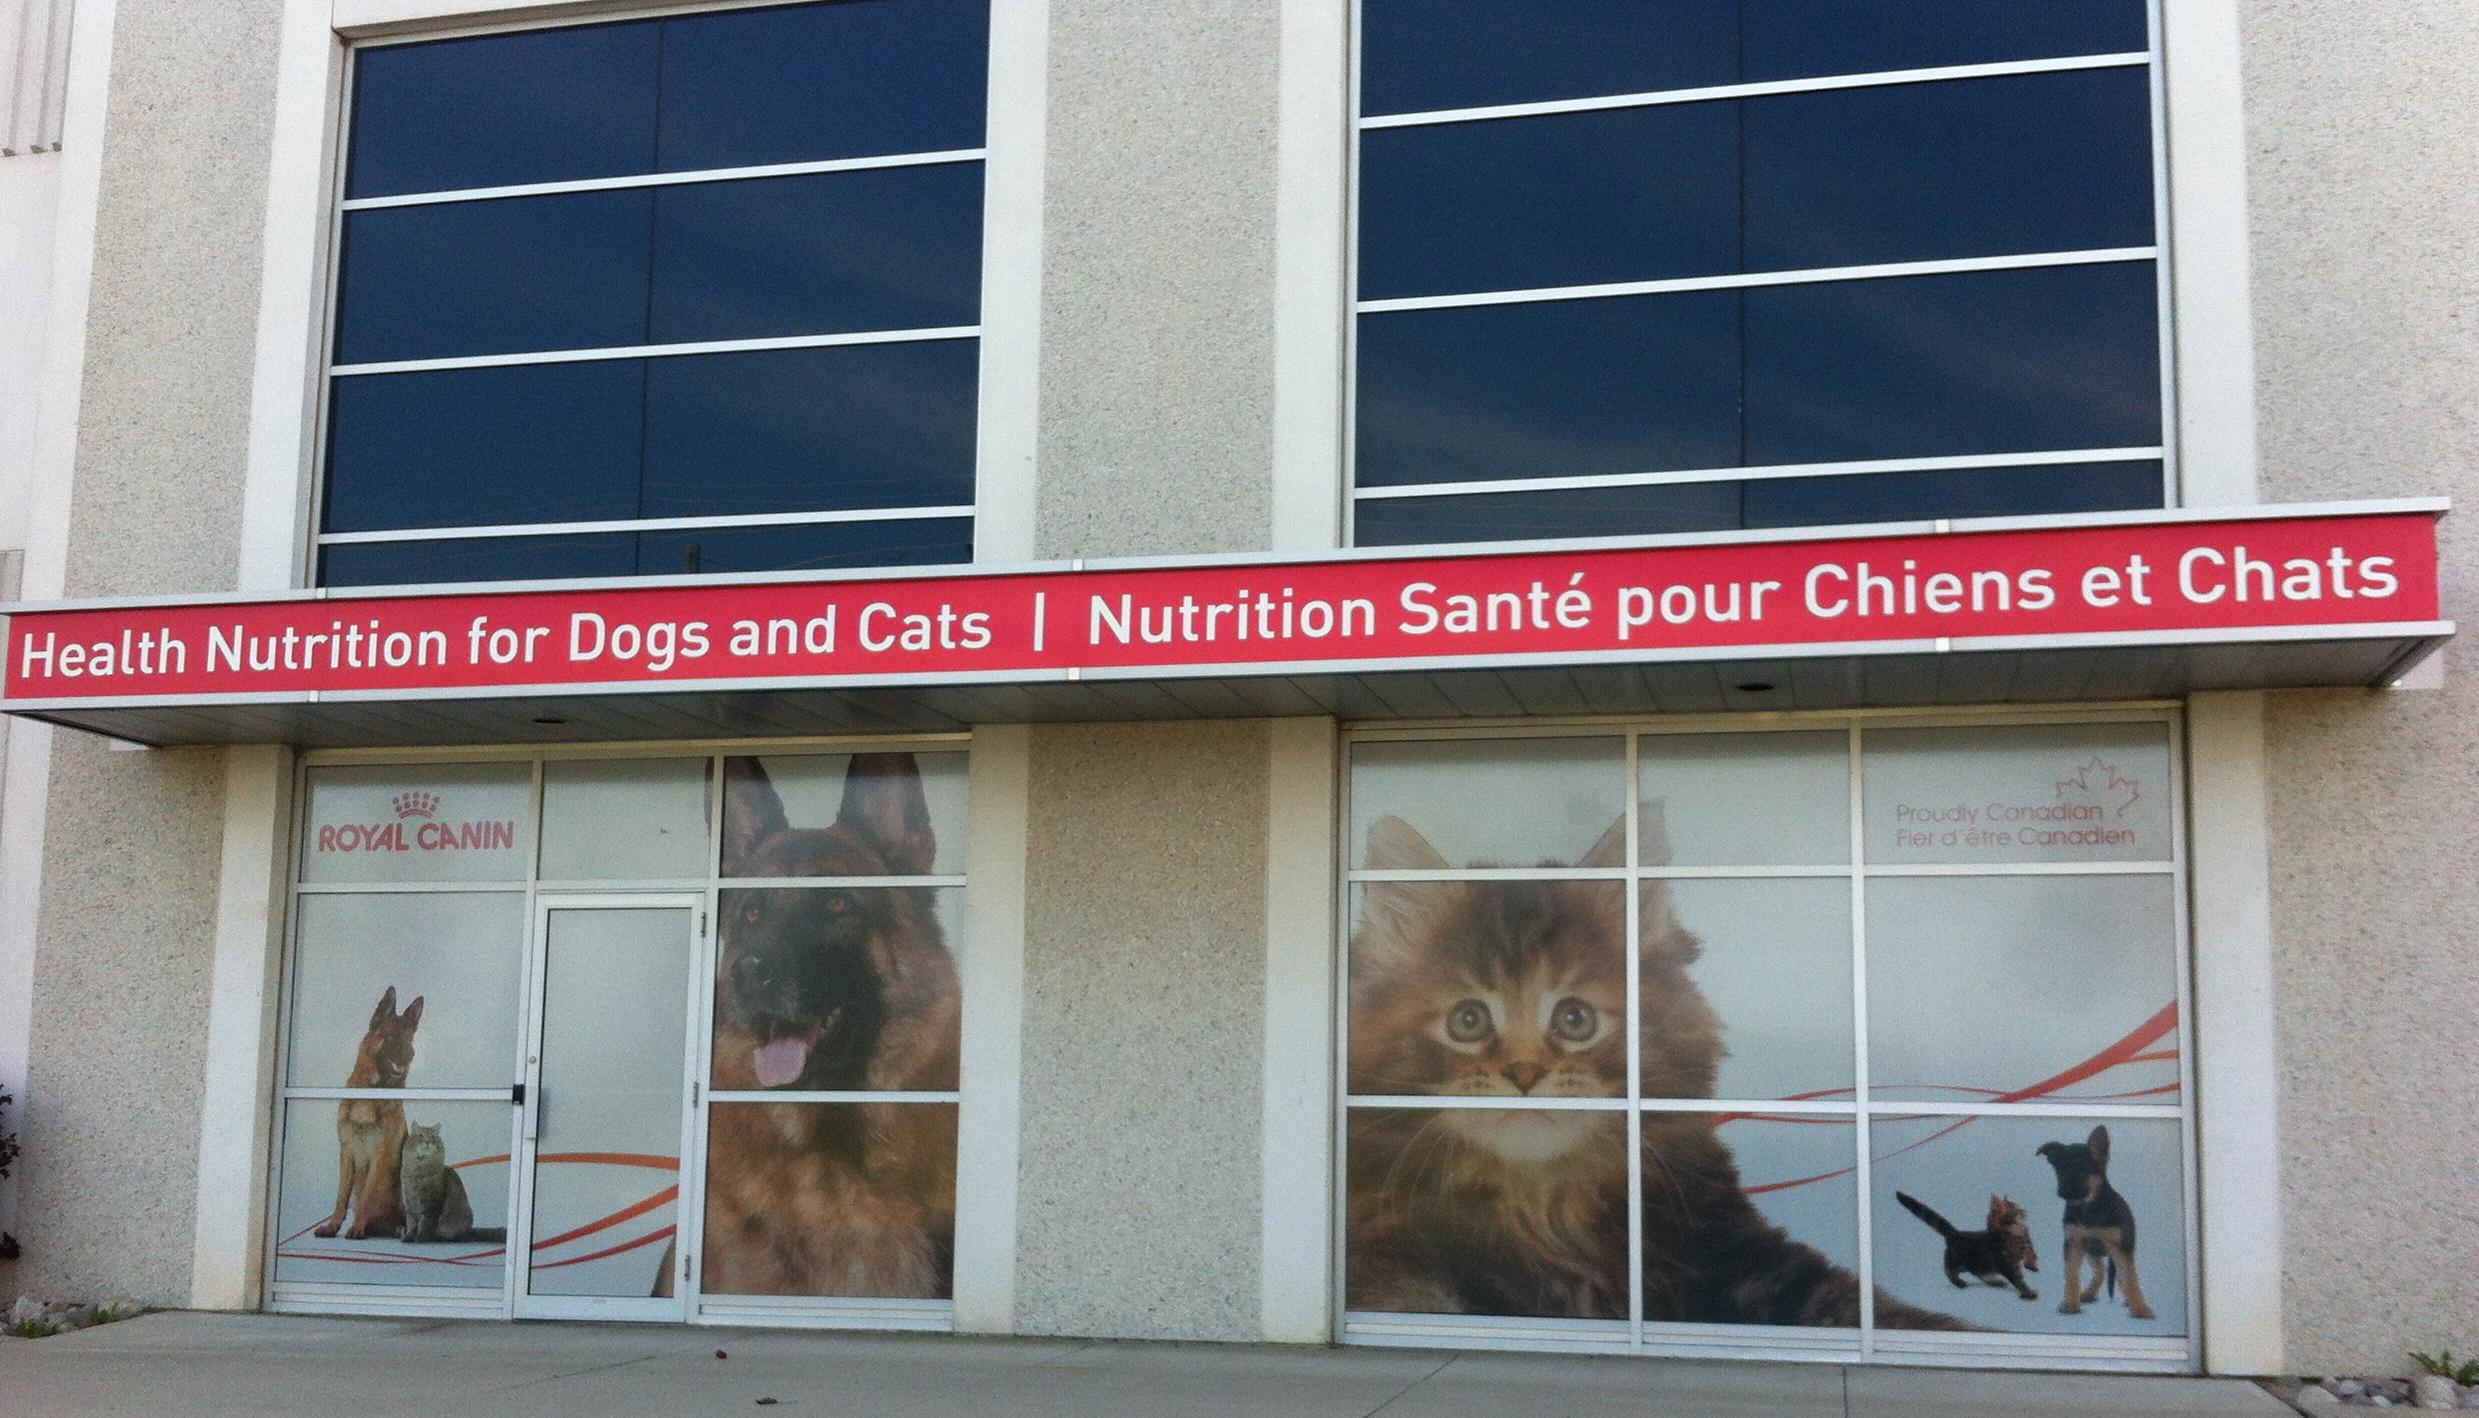 Royal Canin Visit Part II- A Pet Owner's View